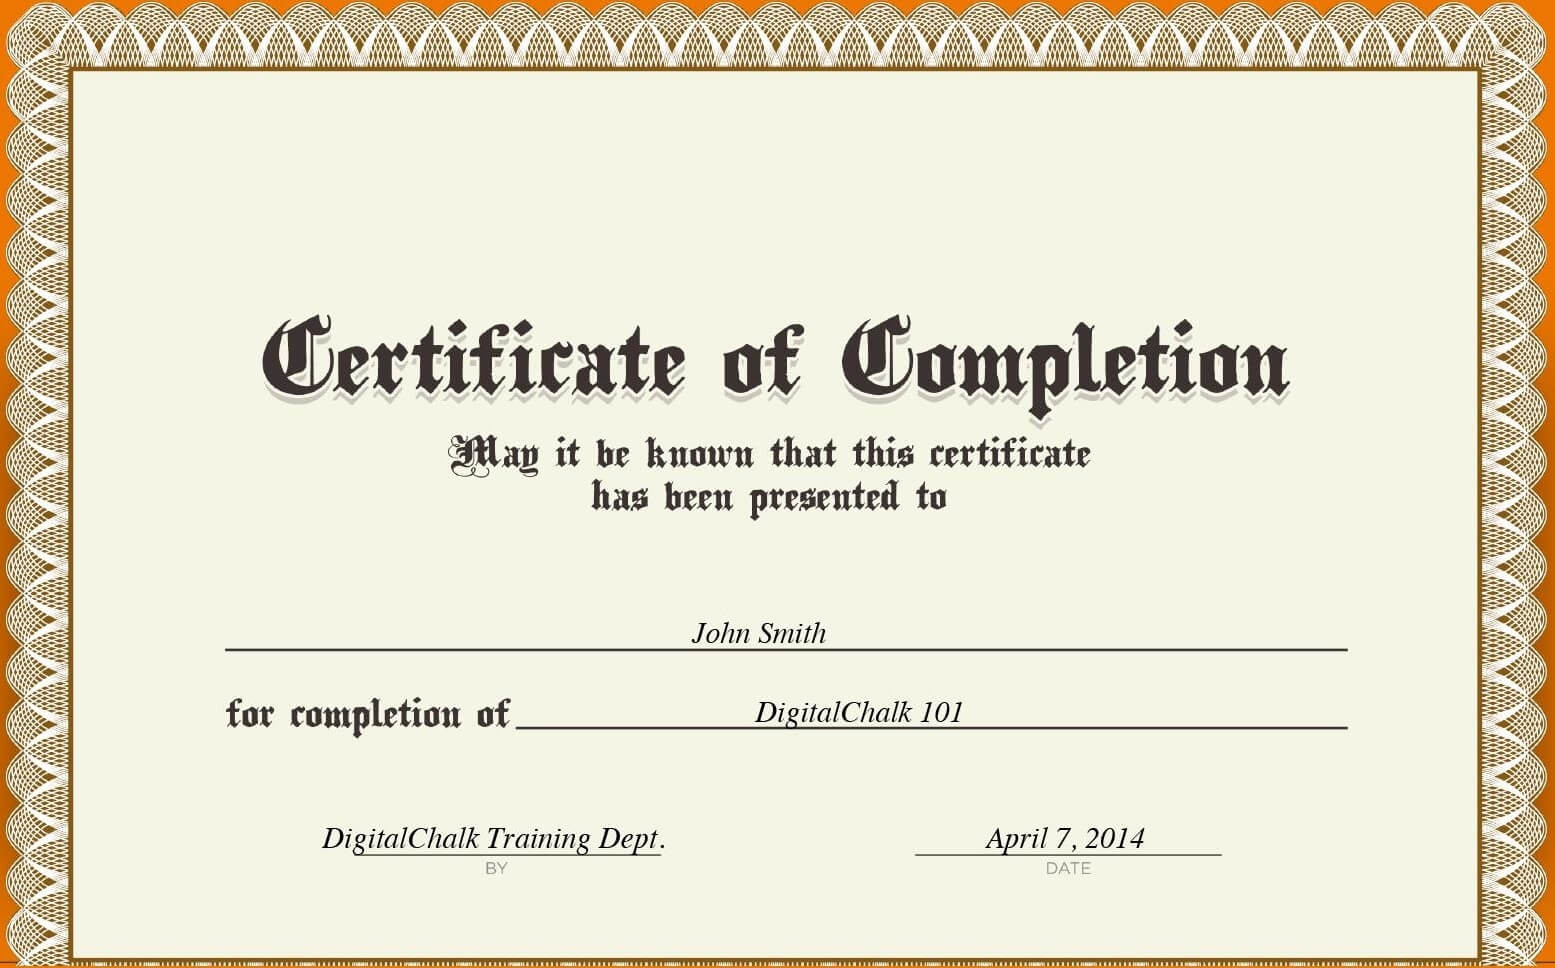 Certificates. Best Completion Certificate Template Designs With Regard To Certification Of Completion Template